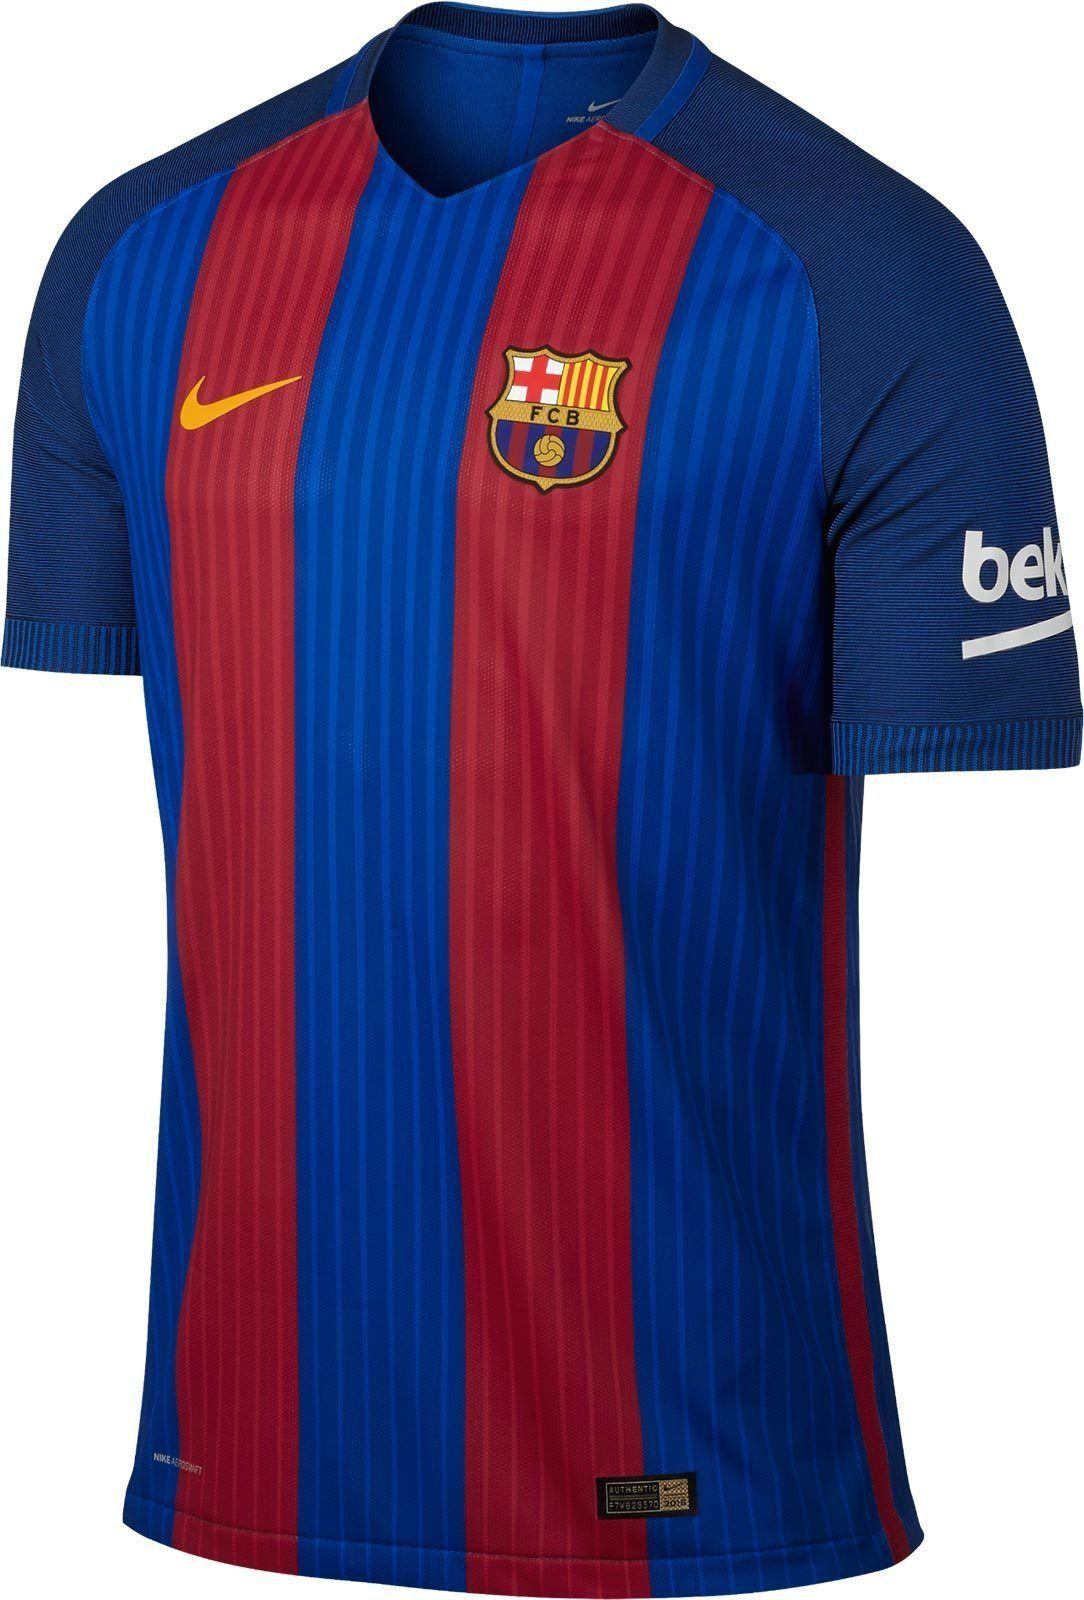 NIKE FC BARCELONA AUTHENTIC VAPOR MATCH HOME JERSEY 2016 17 ENGINEERED  SPEED The 2016 17 FC Barcelona Vapor Match Home Men s Soccer Jersey is the  same ... 94111ccfe